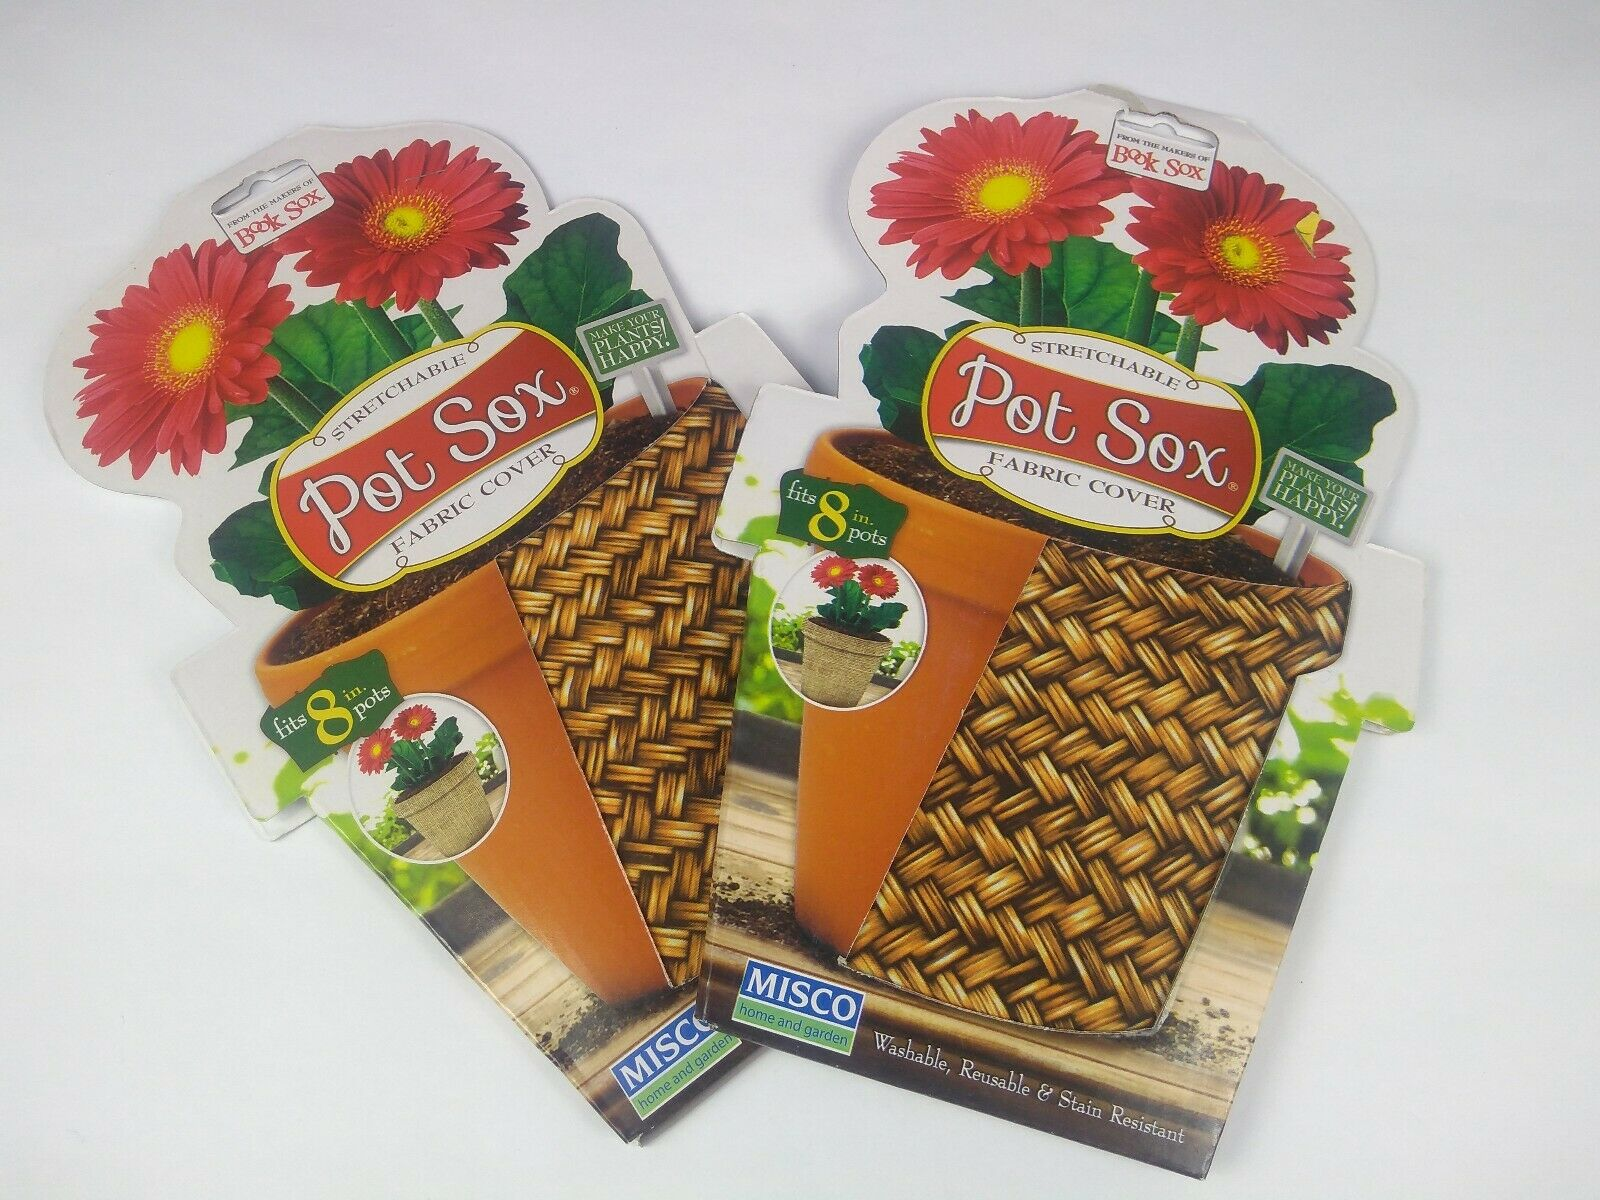 Flower Pot Sox - Stretchable Fabric Pot Cover - Fit 8